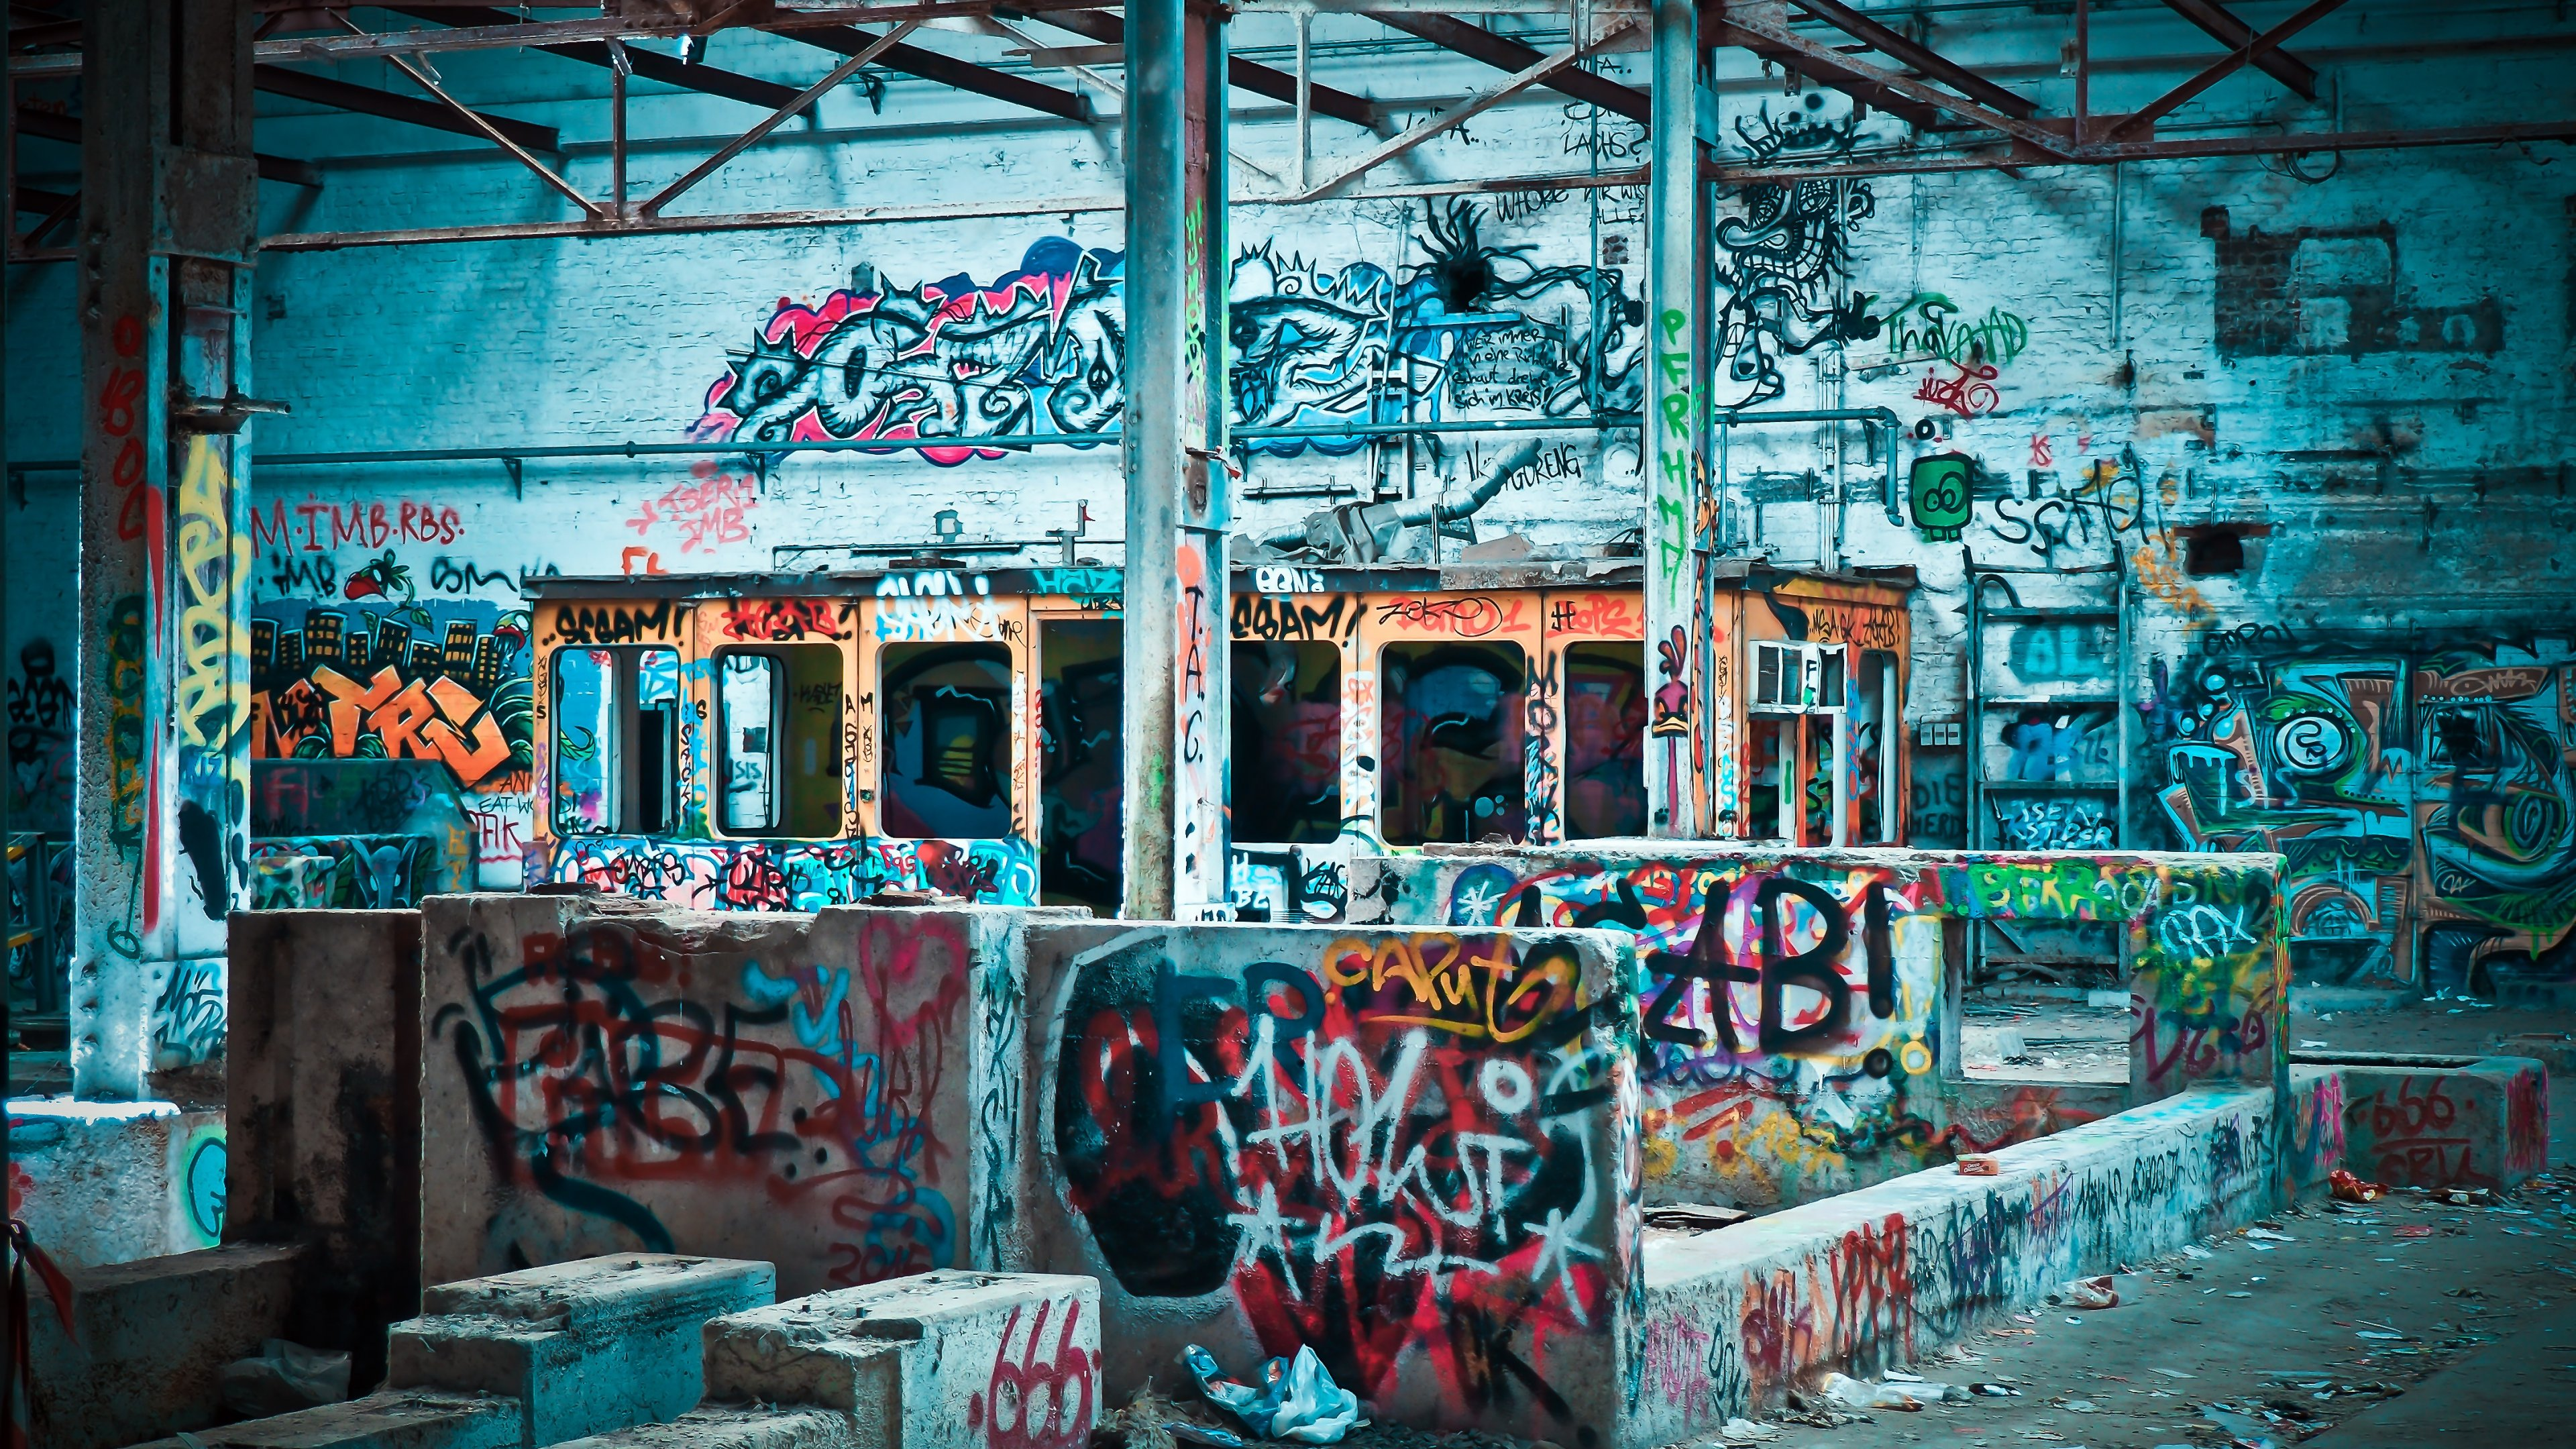 Graffiti tags wallpaper mobile desktop background graffiti tags voltagebd Images